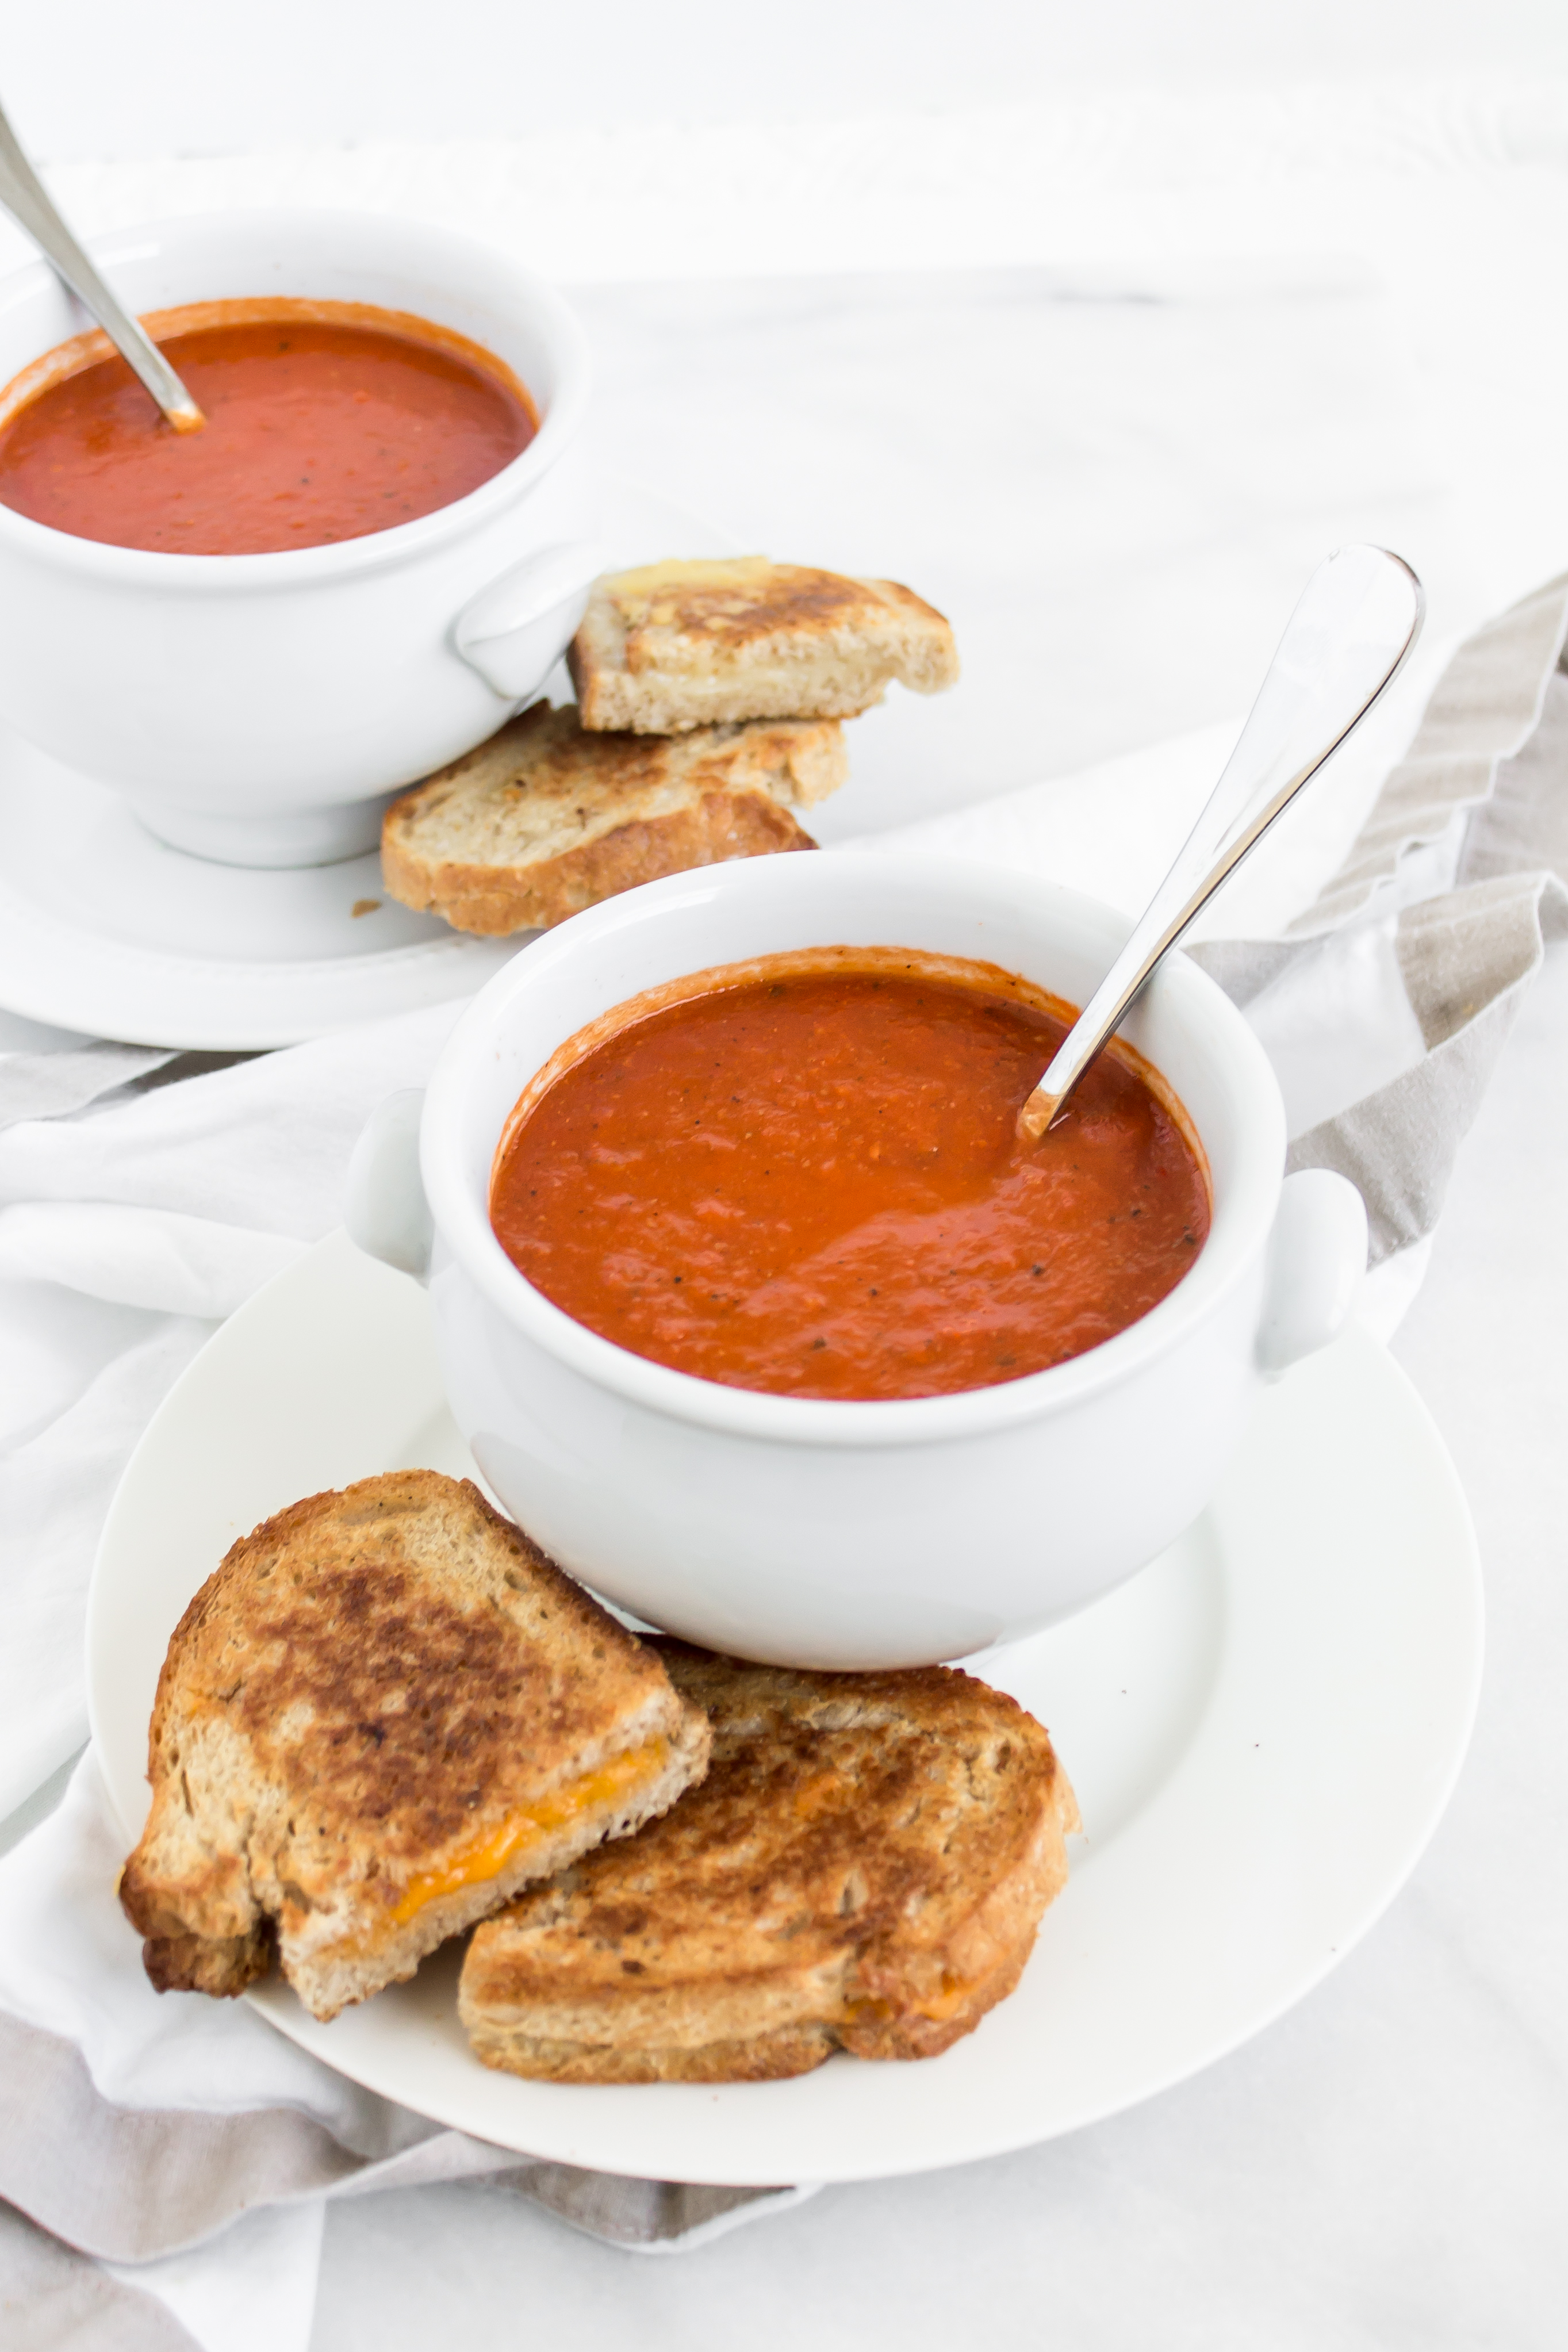 Looking for an easy and delicious healthier soup for dinner? You'll love this spin on classic tomato soup. It's dairy-free using one very cool secret ingredient that keeps it healthier and protein-packed. Click through for the recipe. | glitterinc.com | @glitterinc - Healthier Protein-Packed Classic Tomato Soup by popular North Carolina foodie blogger Glitter, Inc.